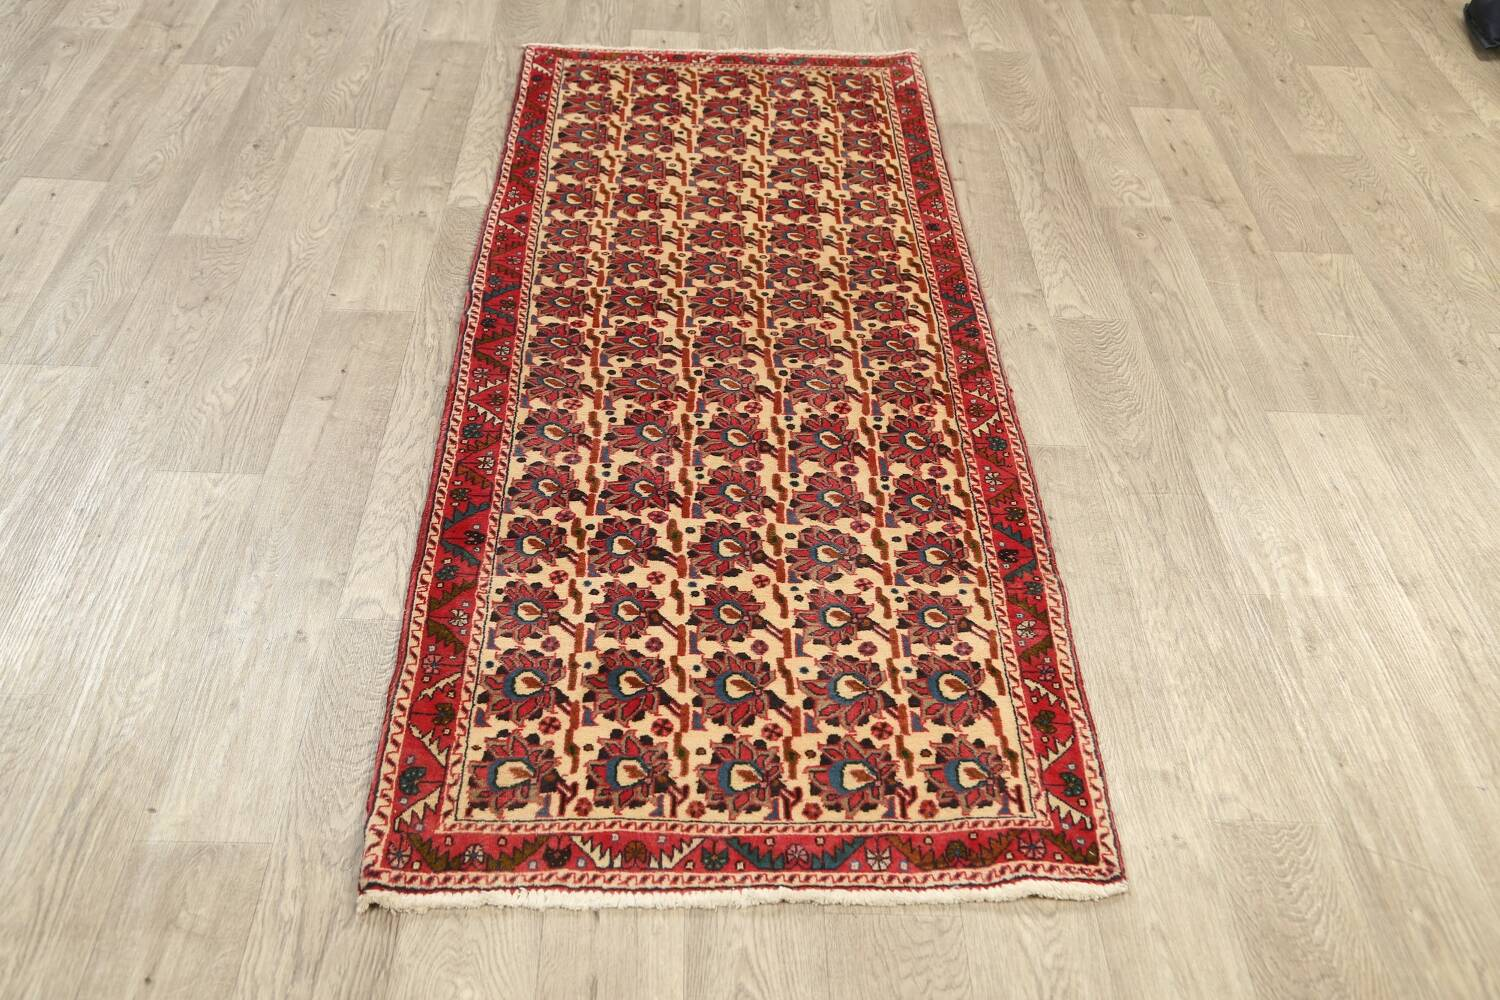 All-Over Geometric Afshar Persian Runner Rug 3x7 image 14